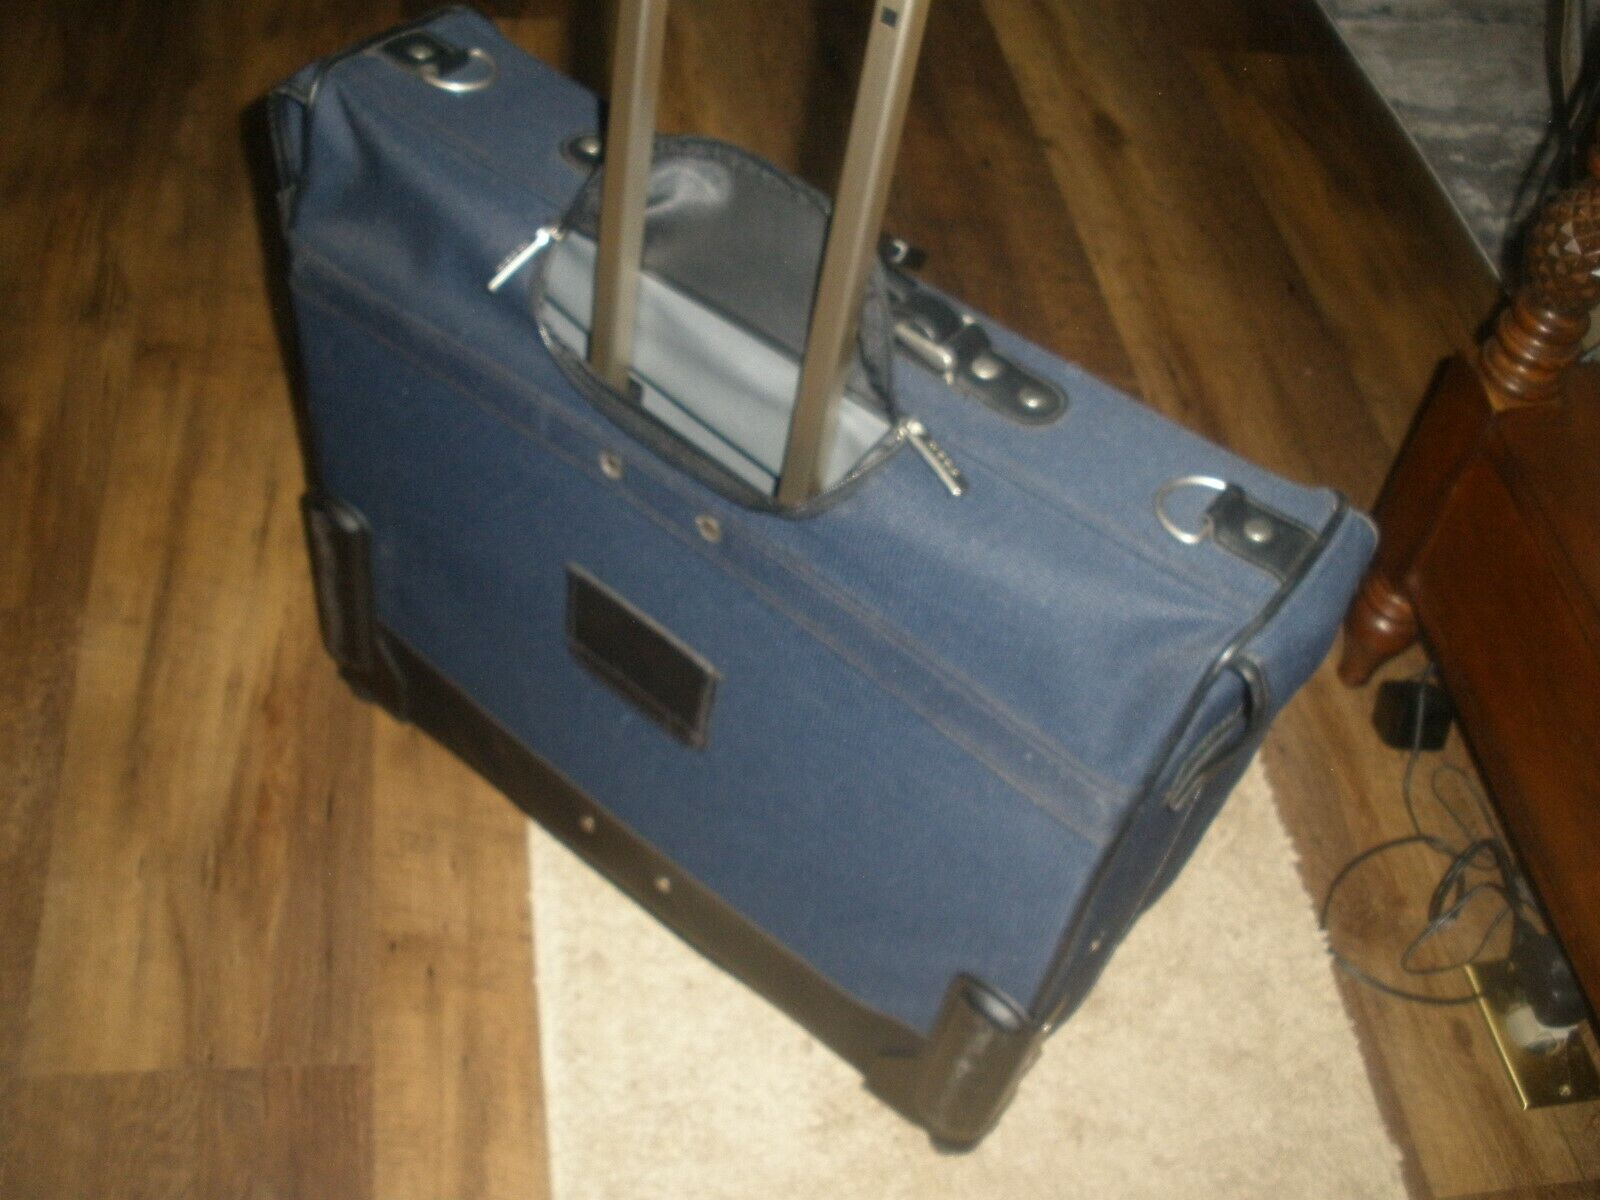 Folding Garment Bag Luggage Carry On Suitcase Travel Wheels Clothing Suits Dress - $45.00